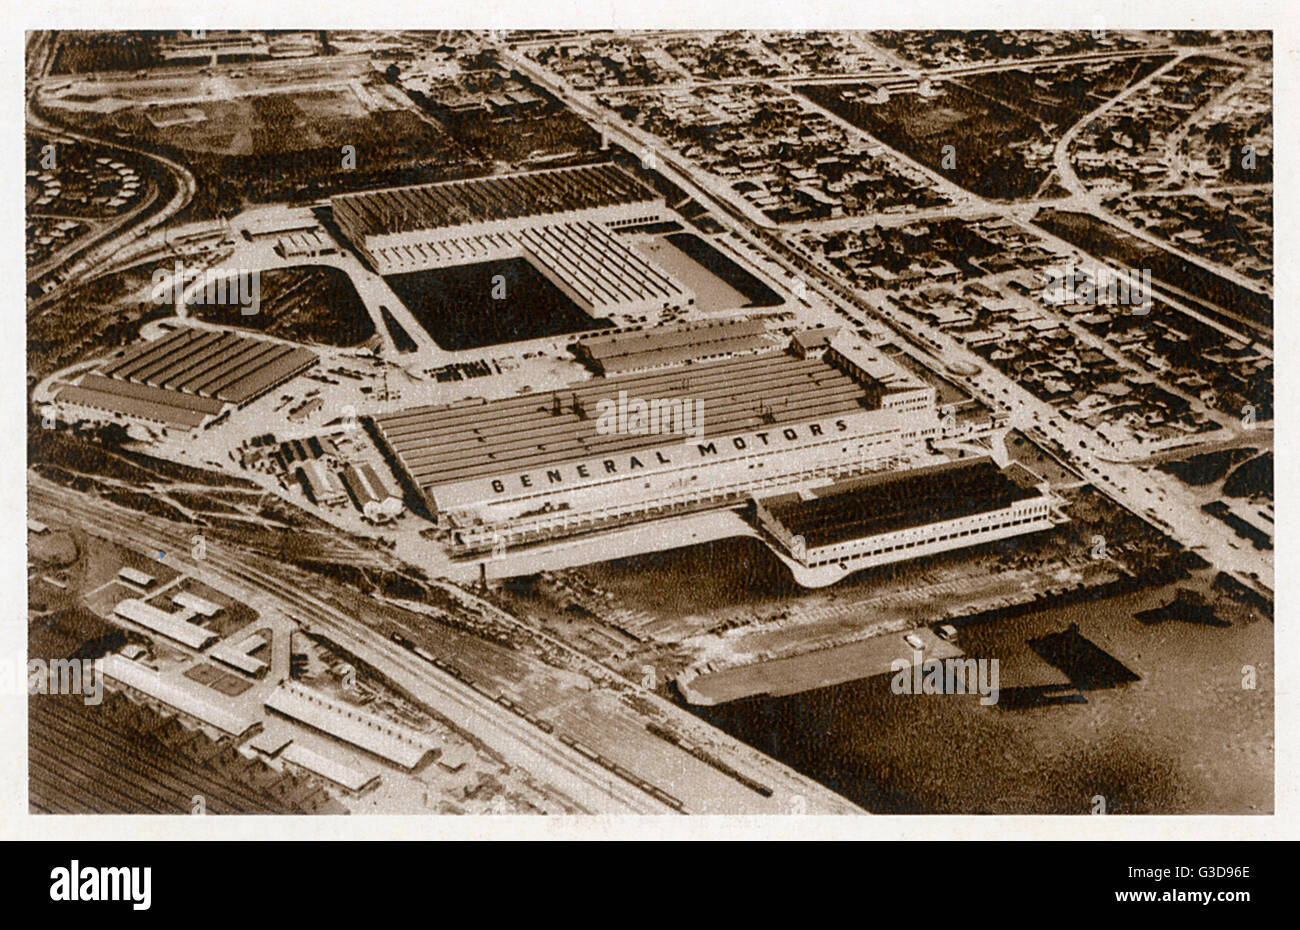 Aerial view of a General Motors factory in South Africa (possibly in Port Elizabeth), for the manufacture of Chevrolet, - Stock Image